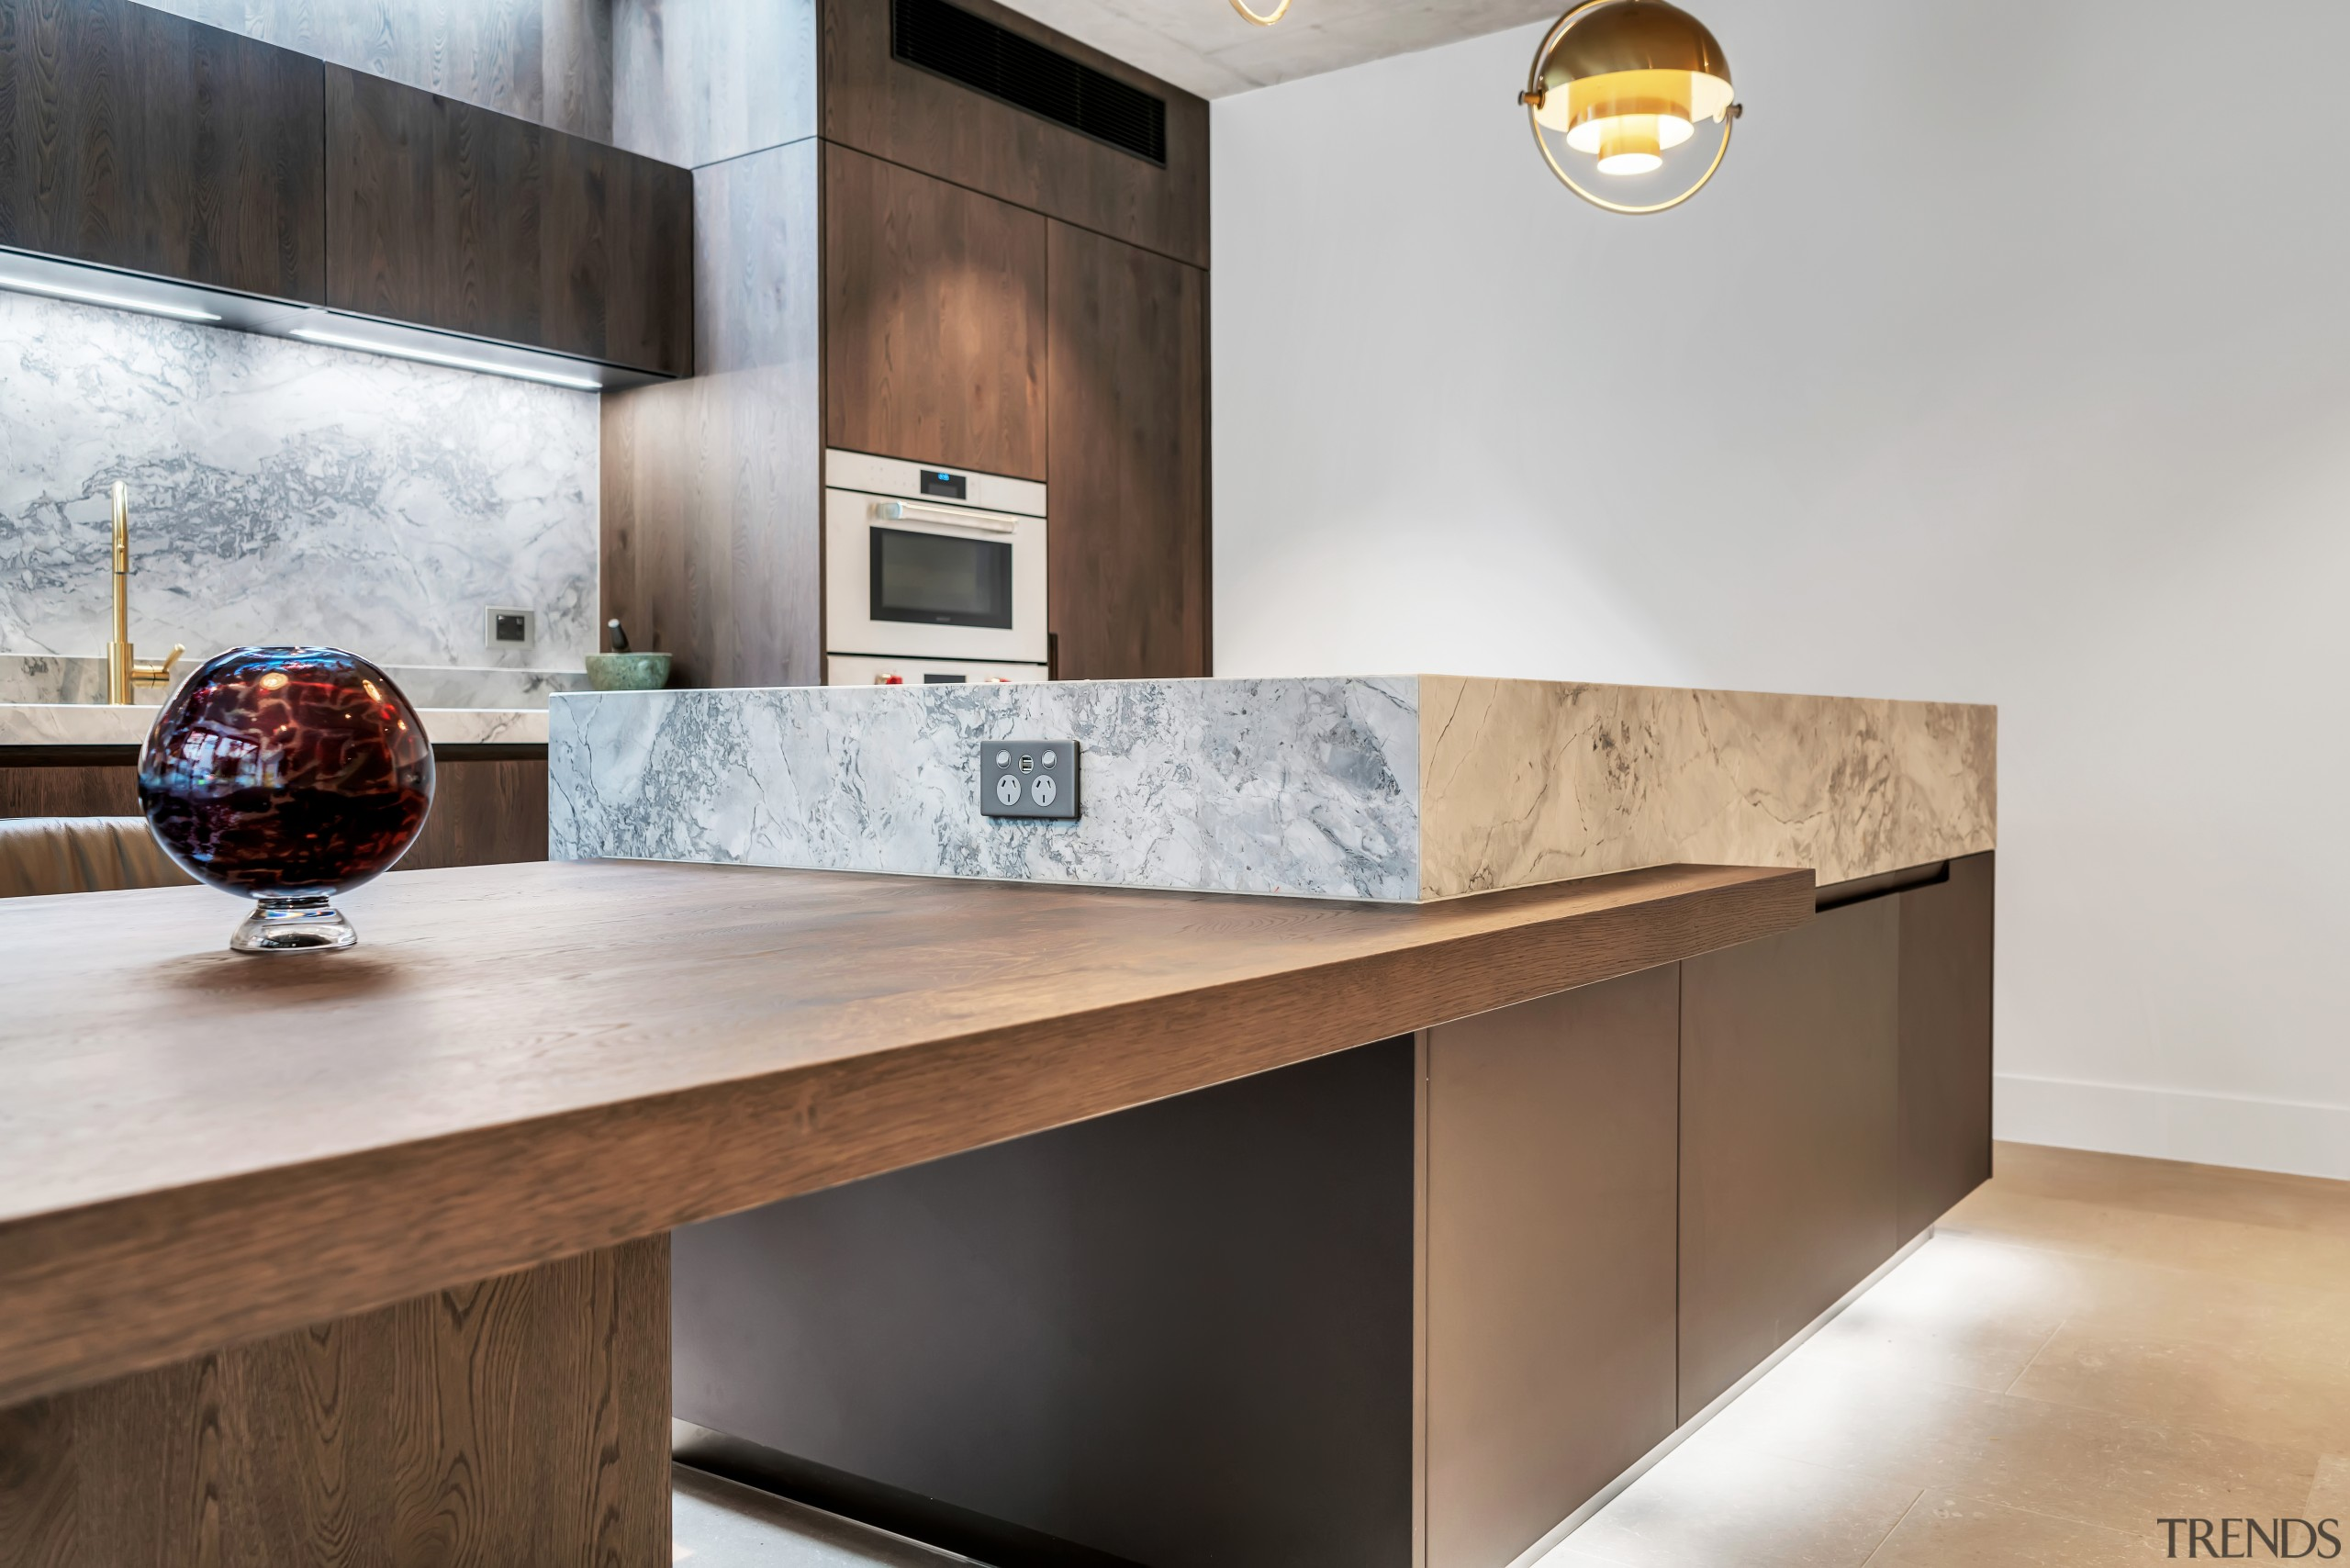 This kitchen, by designer Dean Welsh, includes a